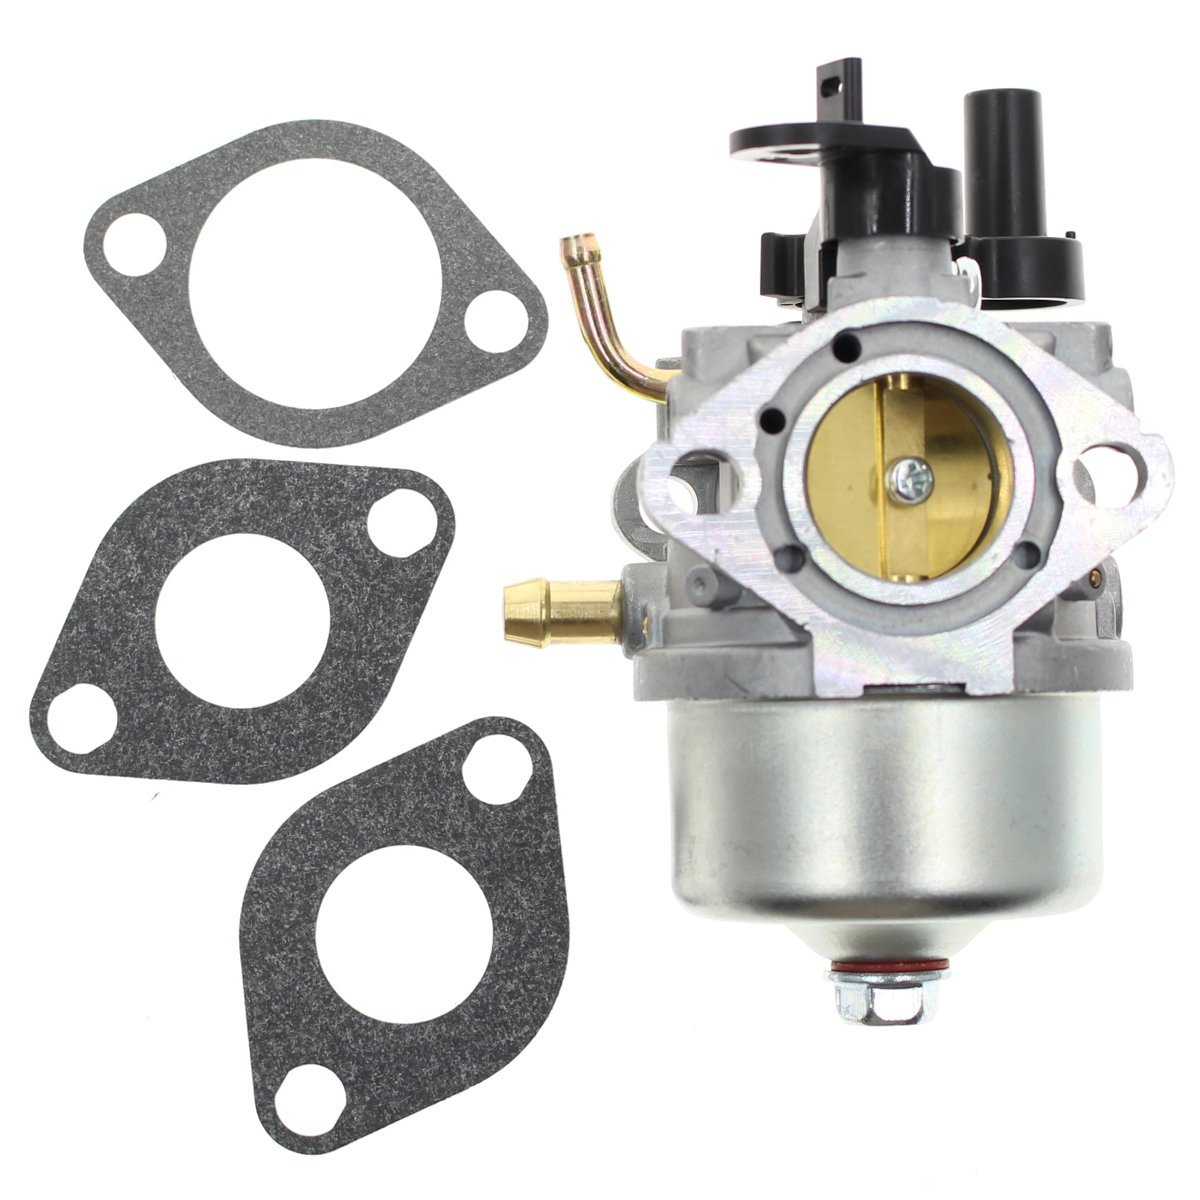 Carbhub Carburetor for Briggs & Stratton 801396 801233 801255 Snow Blower Carb